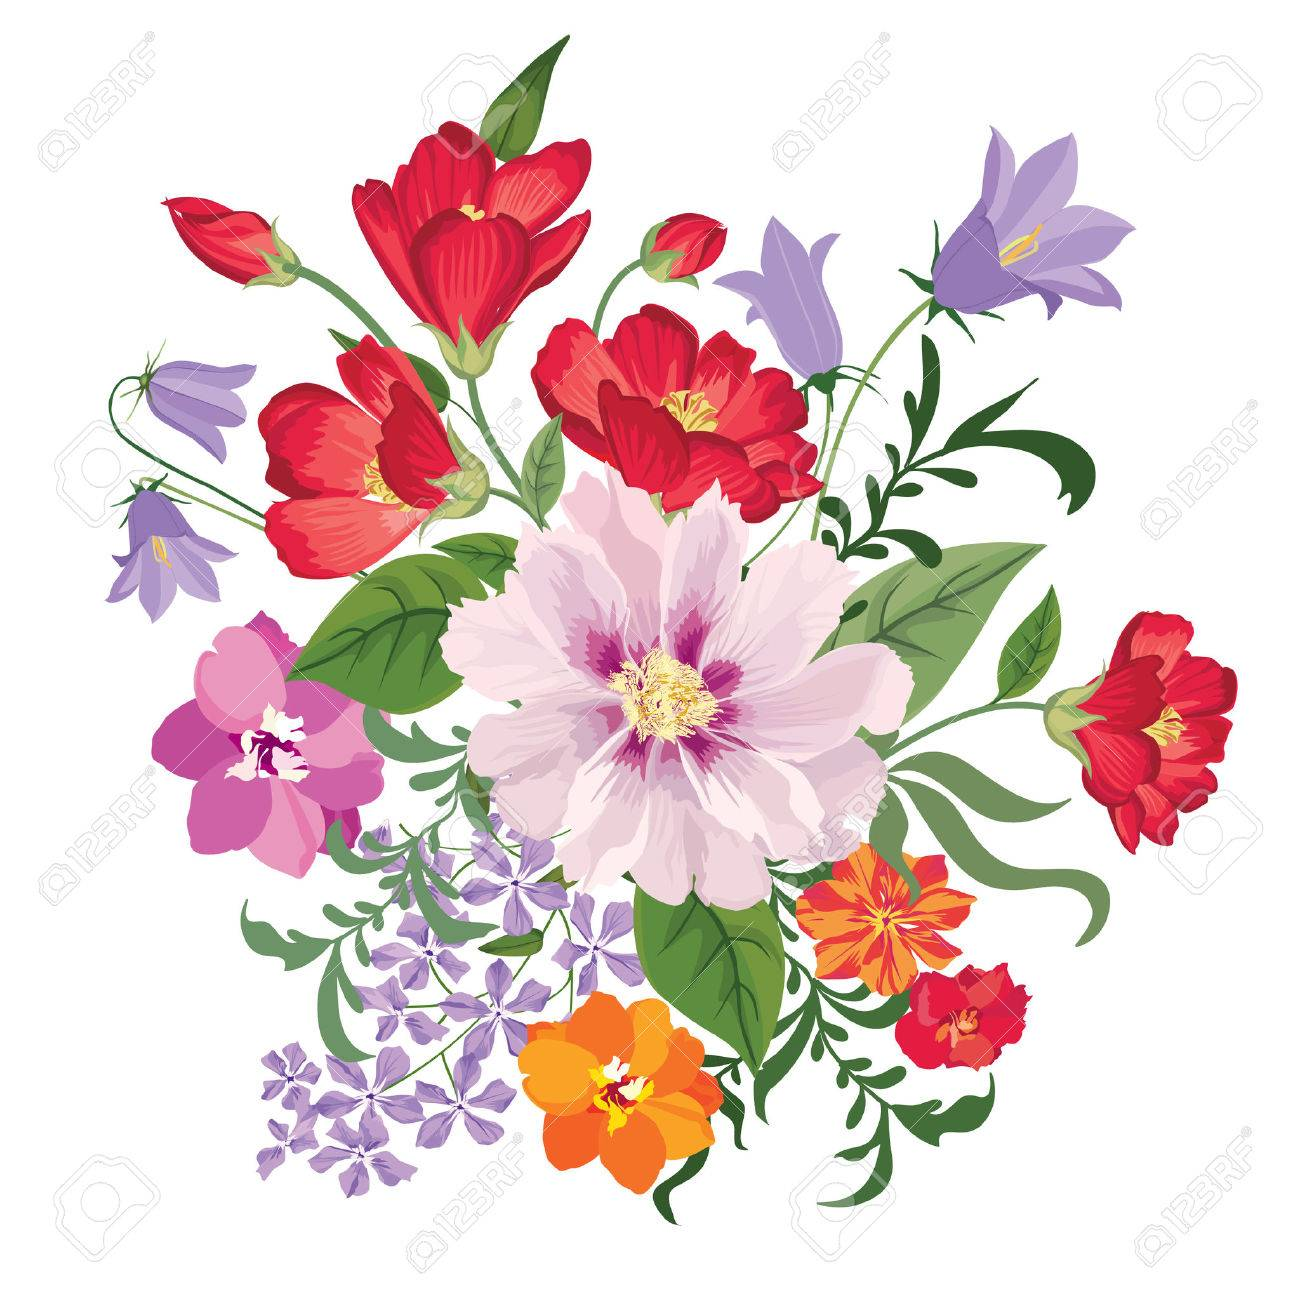 Flower bouquet. Floral frame. Flourish greeting card. Blooming flowers isolated on white background Stock Vector - 46073593